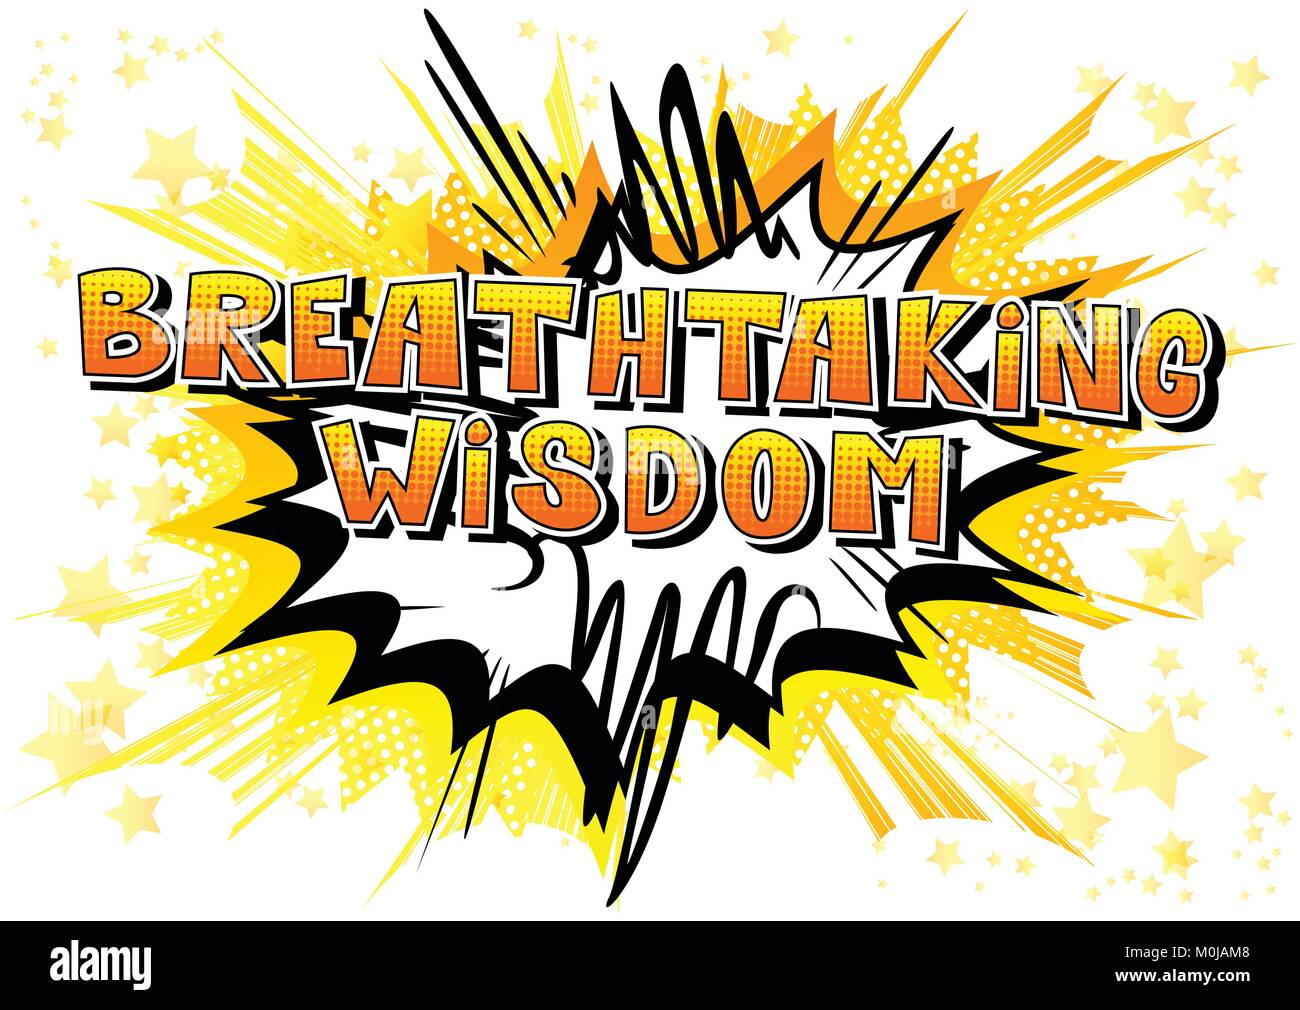 Breathtaking Wisdom - Comic book style word on abstract background. - Stock Vector